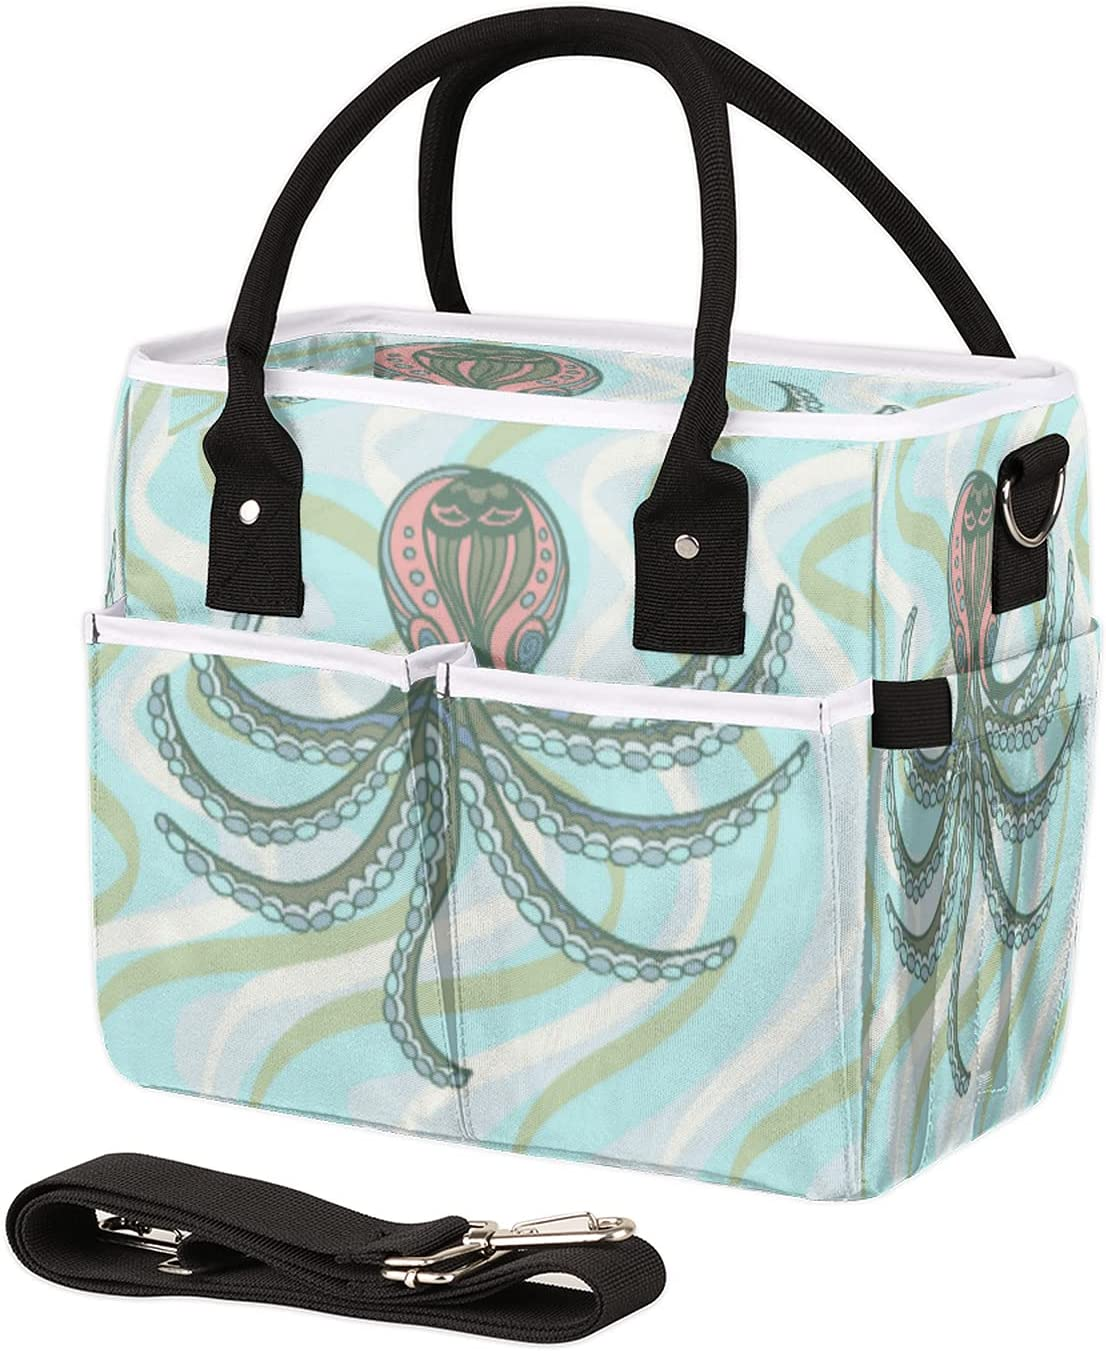 Insulated Lunch OFFicial shop Bag for Women Men Stripe La Sea Max 56% OFF Octopus Reusable